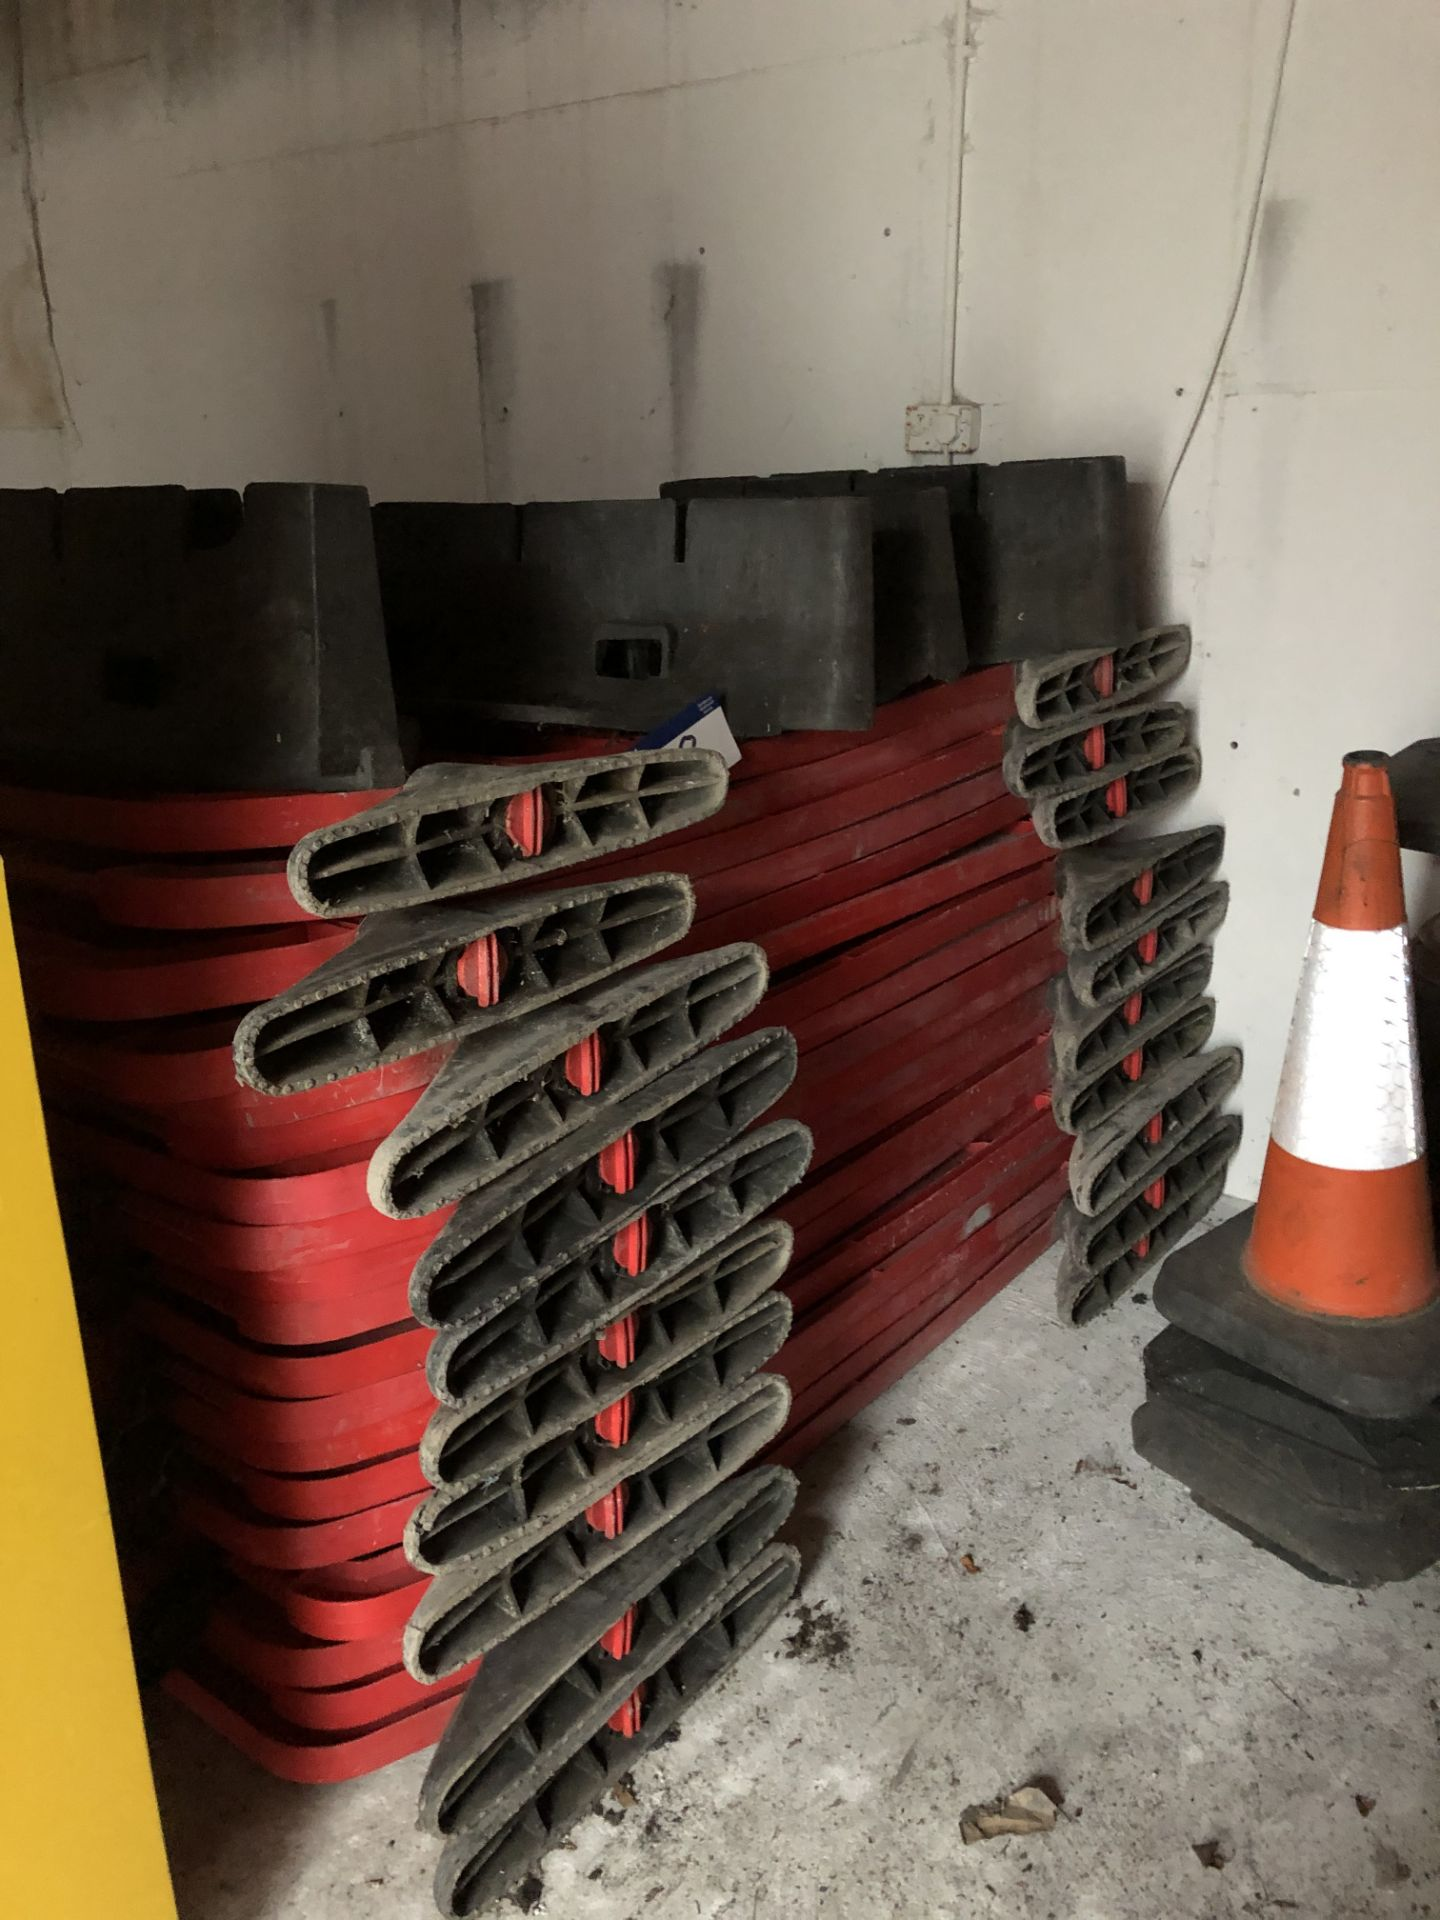 Lot 48 - 19 Sections of Interlocking Plastic Barrier